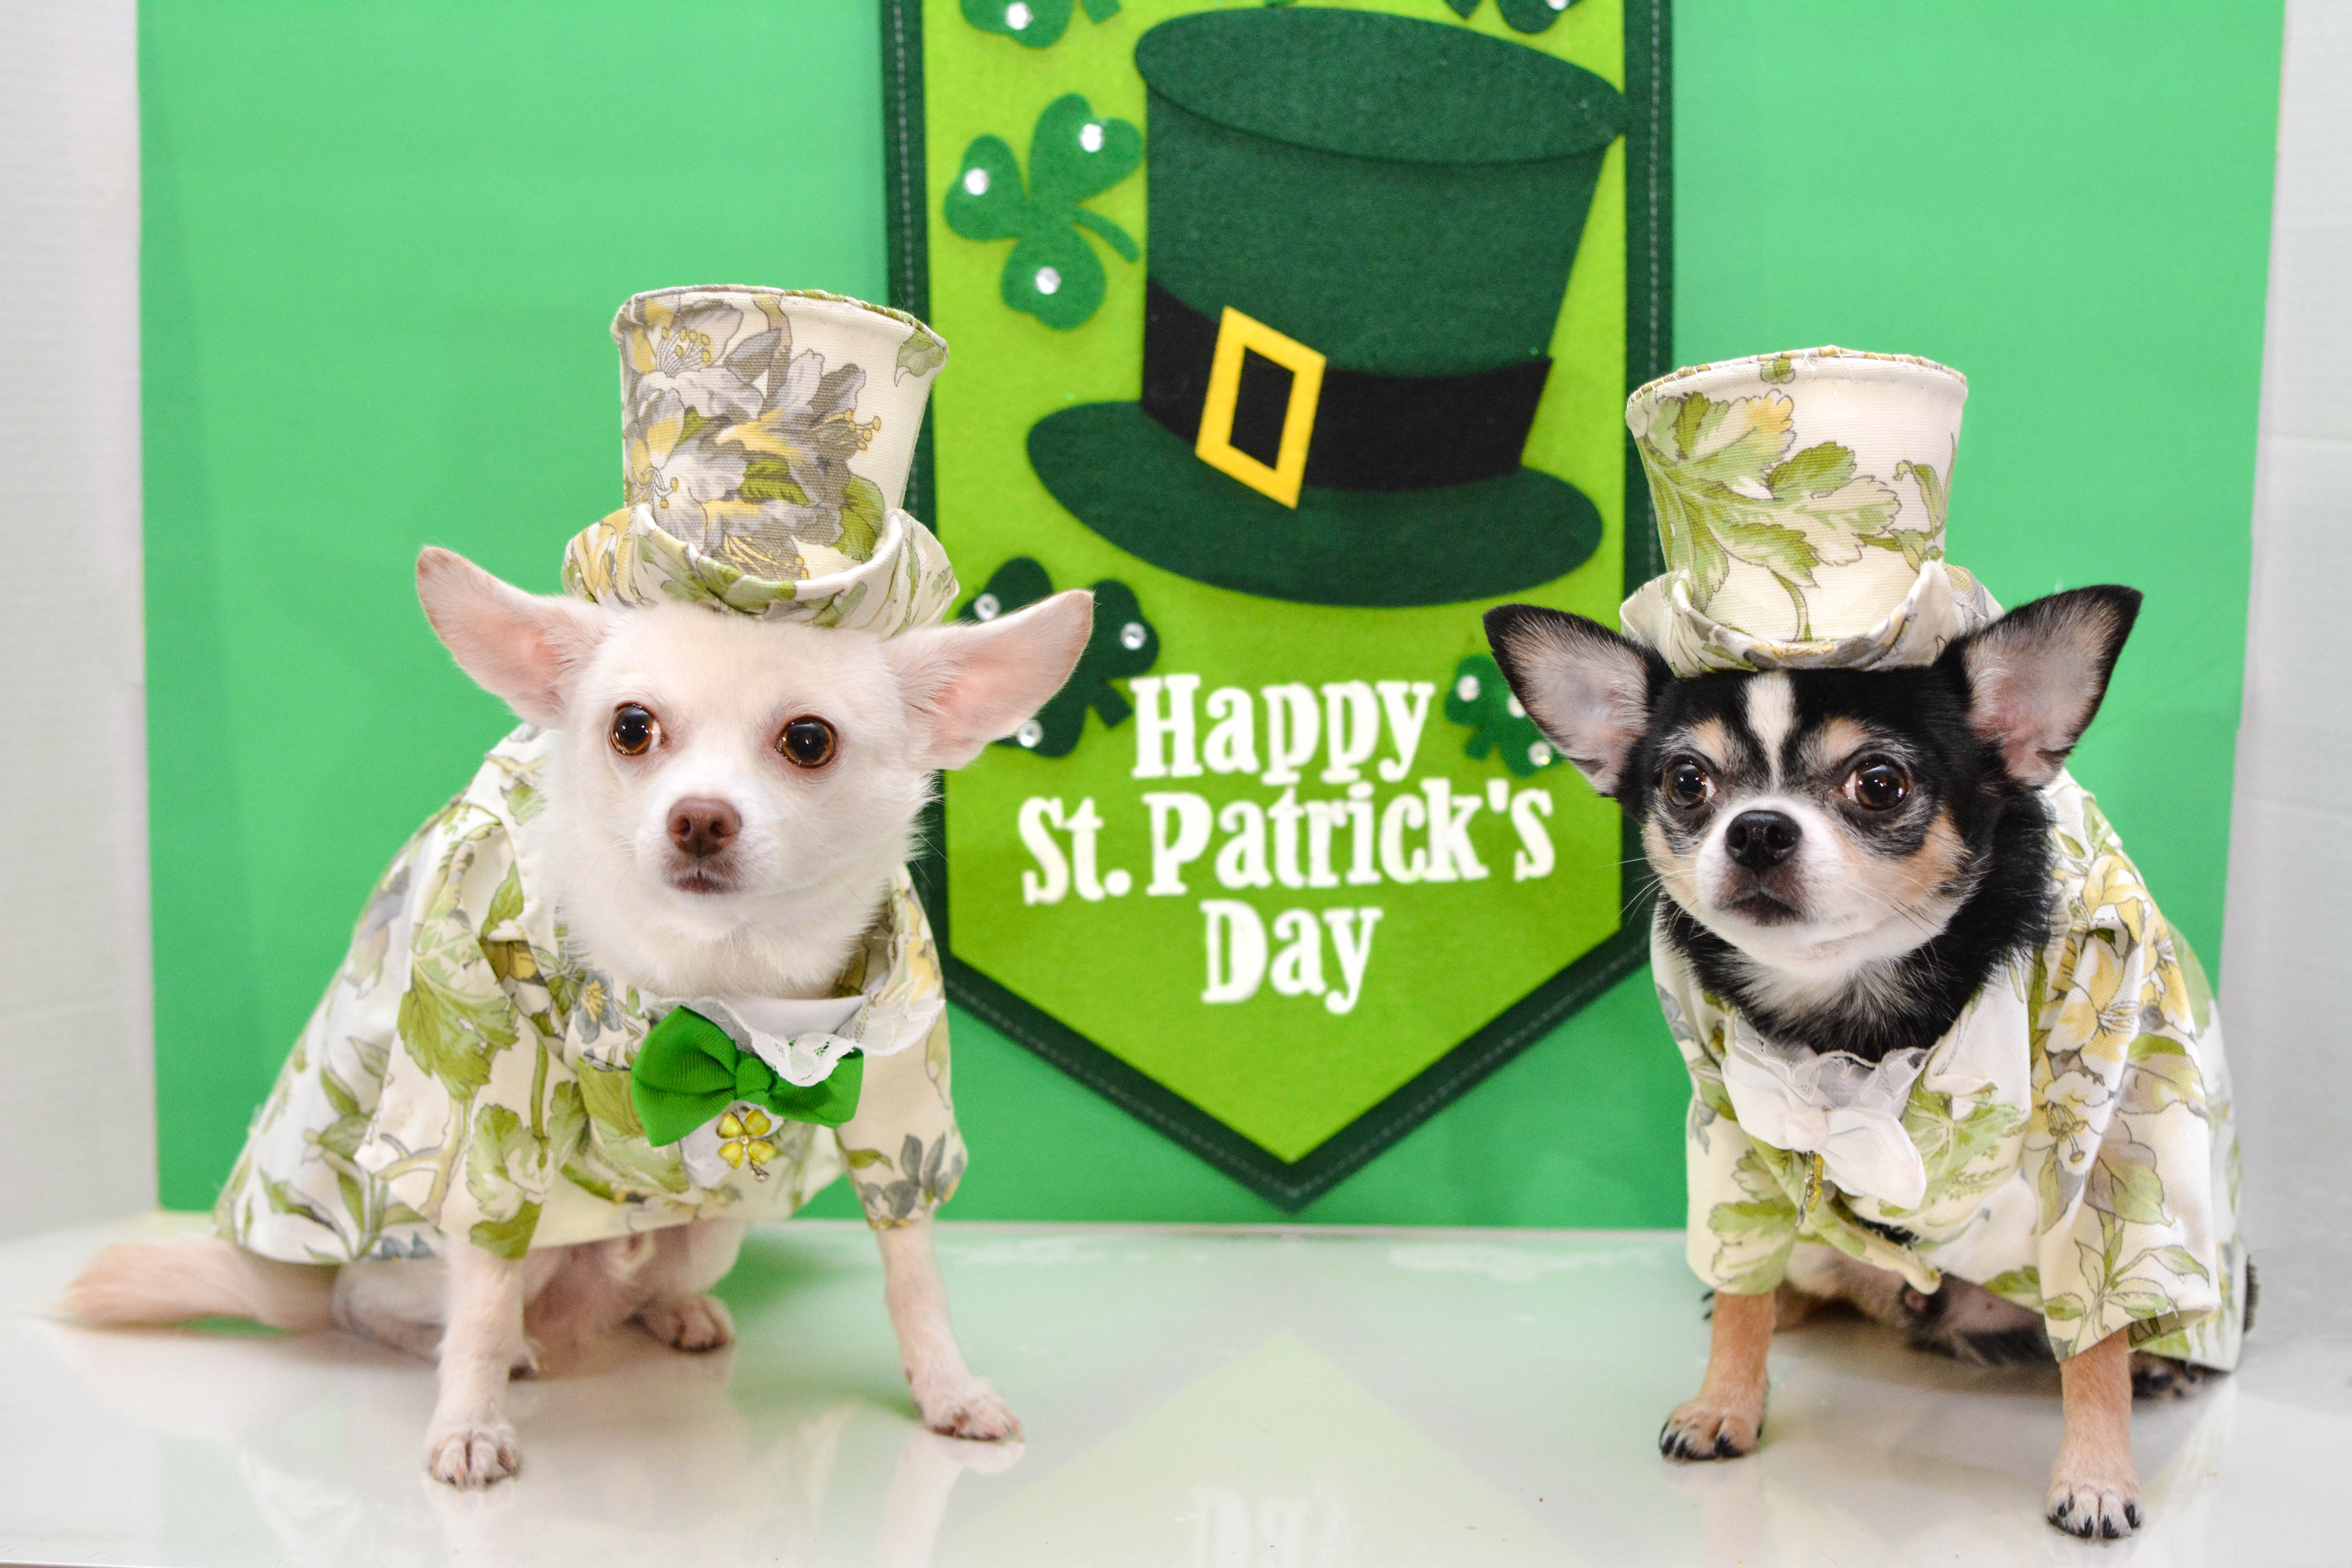 Happy St Patrick's Day! from Anthony Rubio